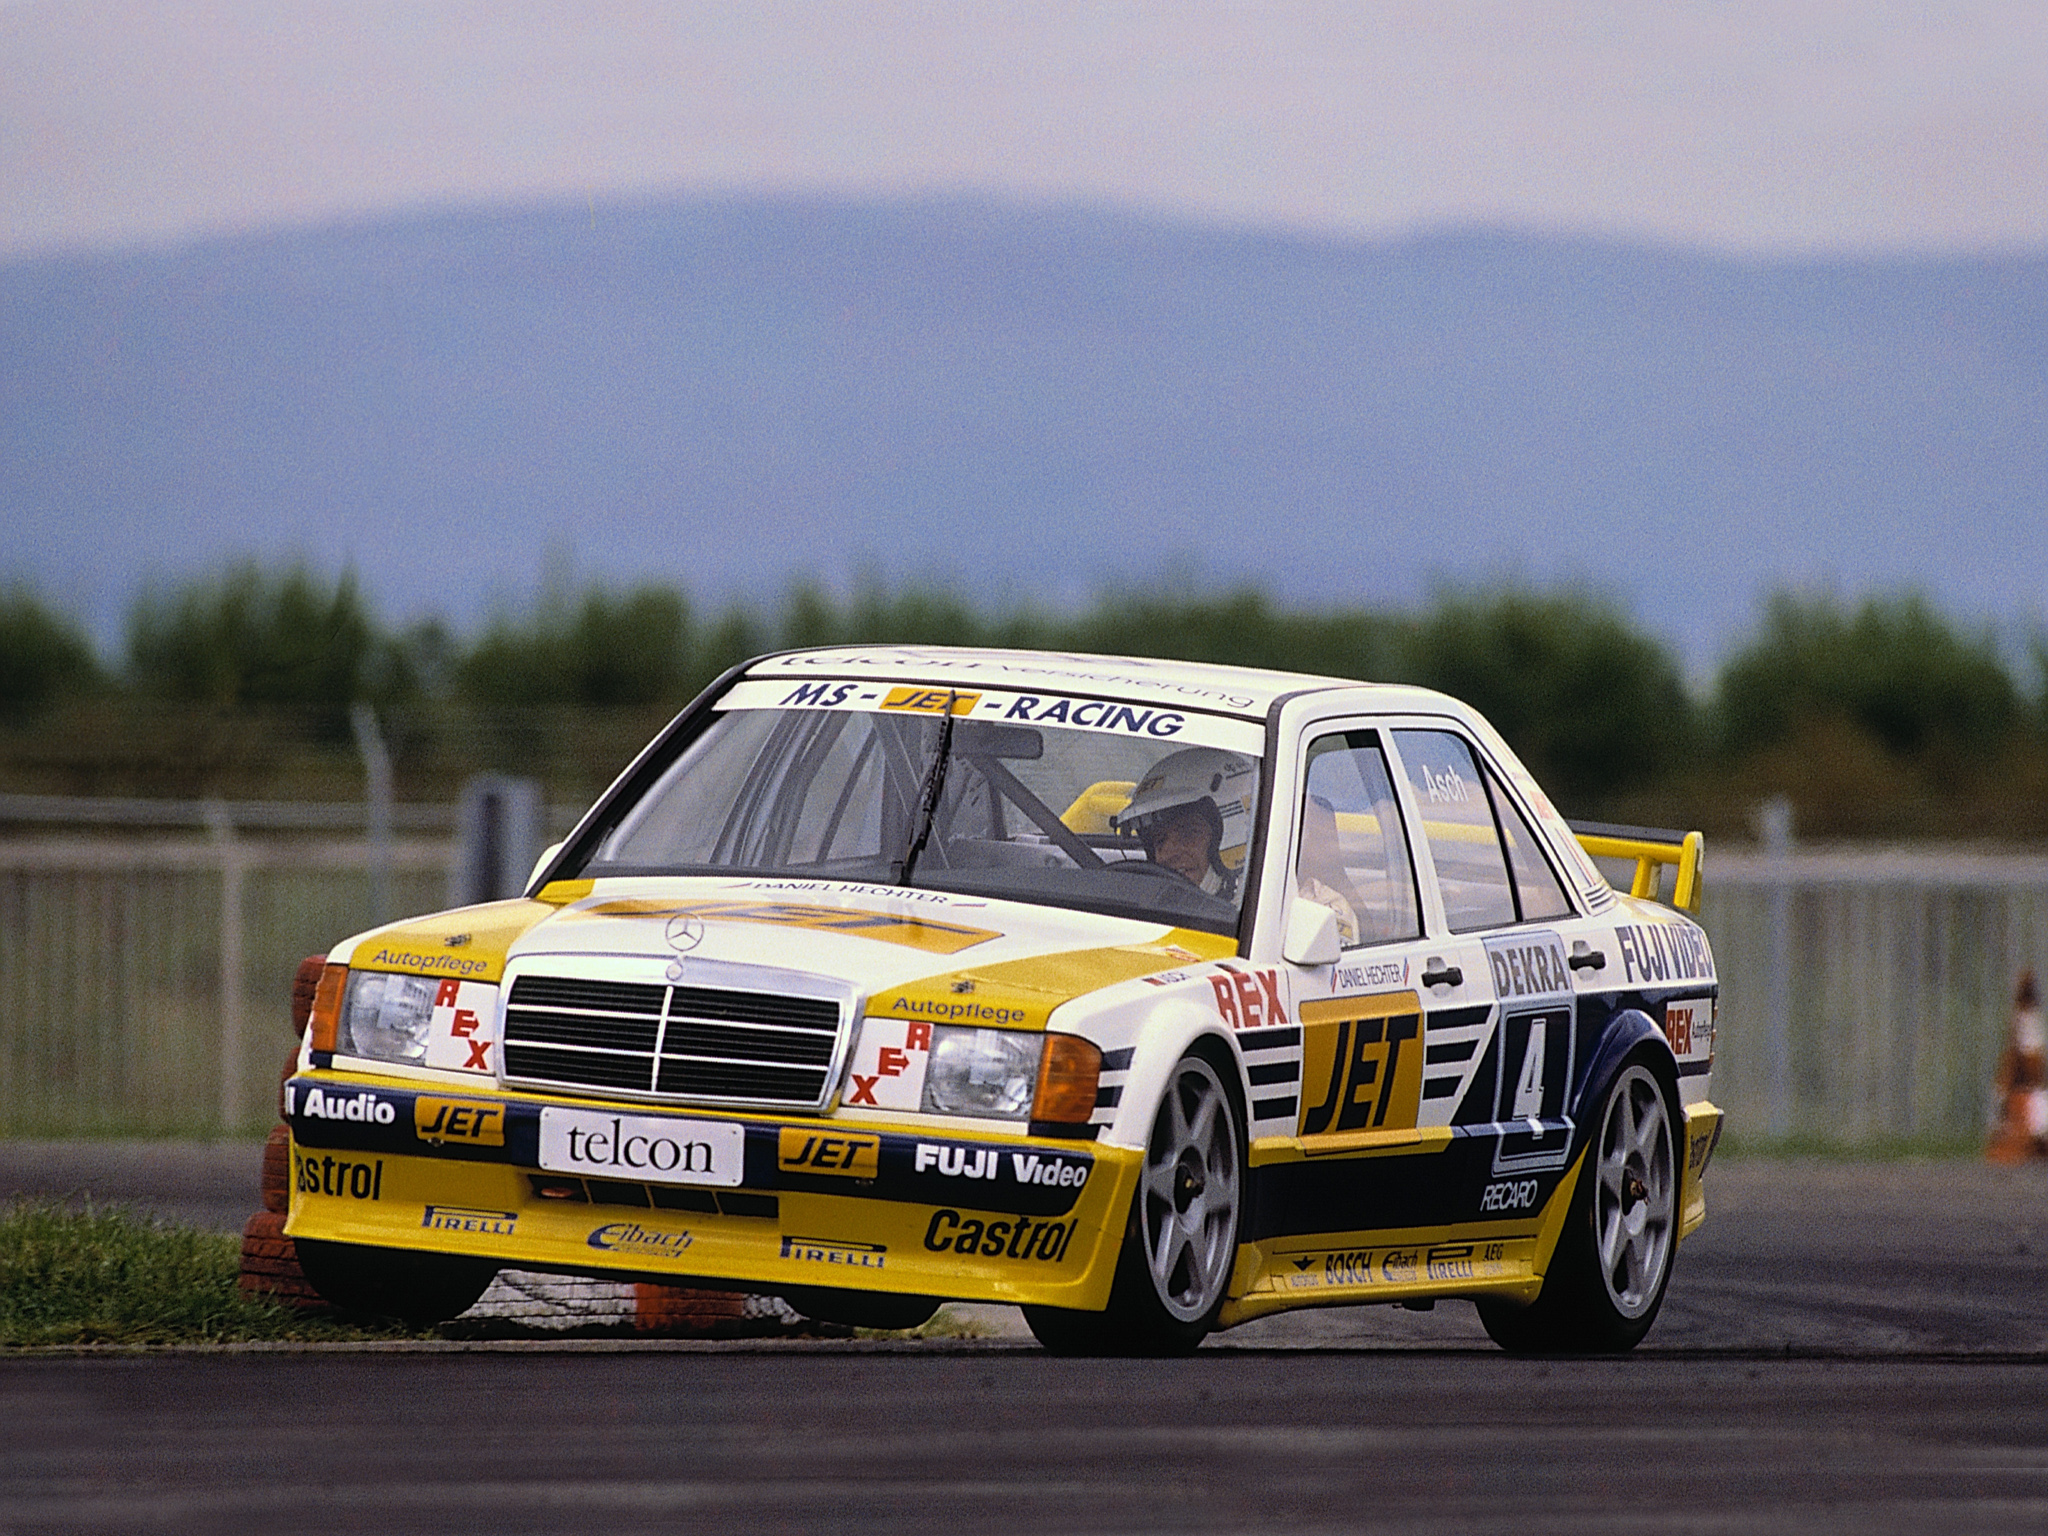 1989 mercedes benz 190 e 2 5 16 evolution dtm w201 race for Mercedes benz race